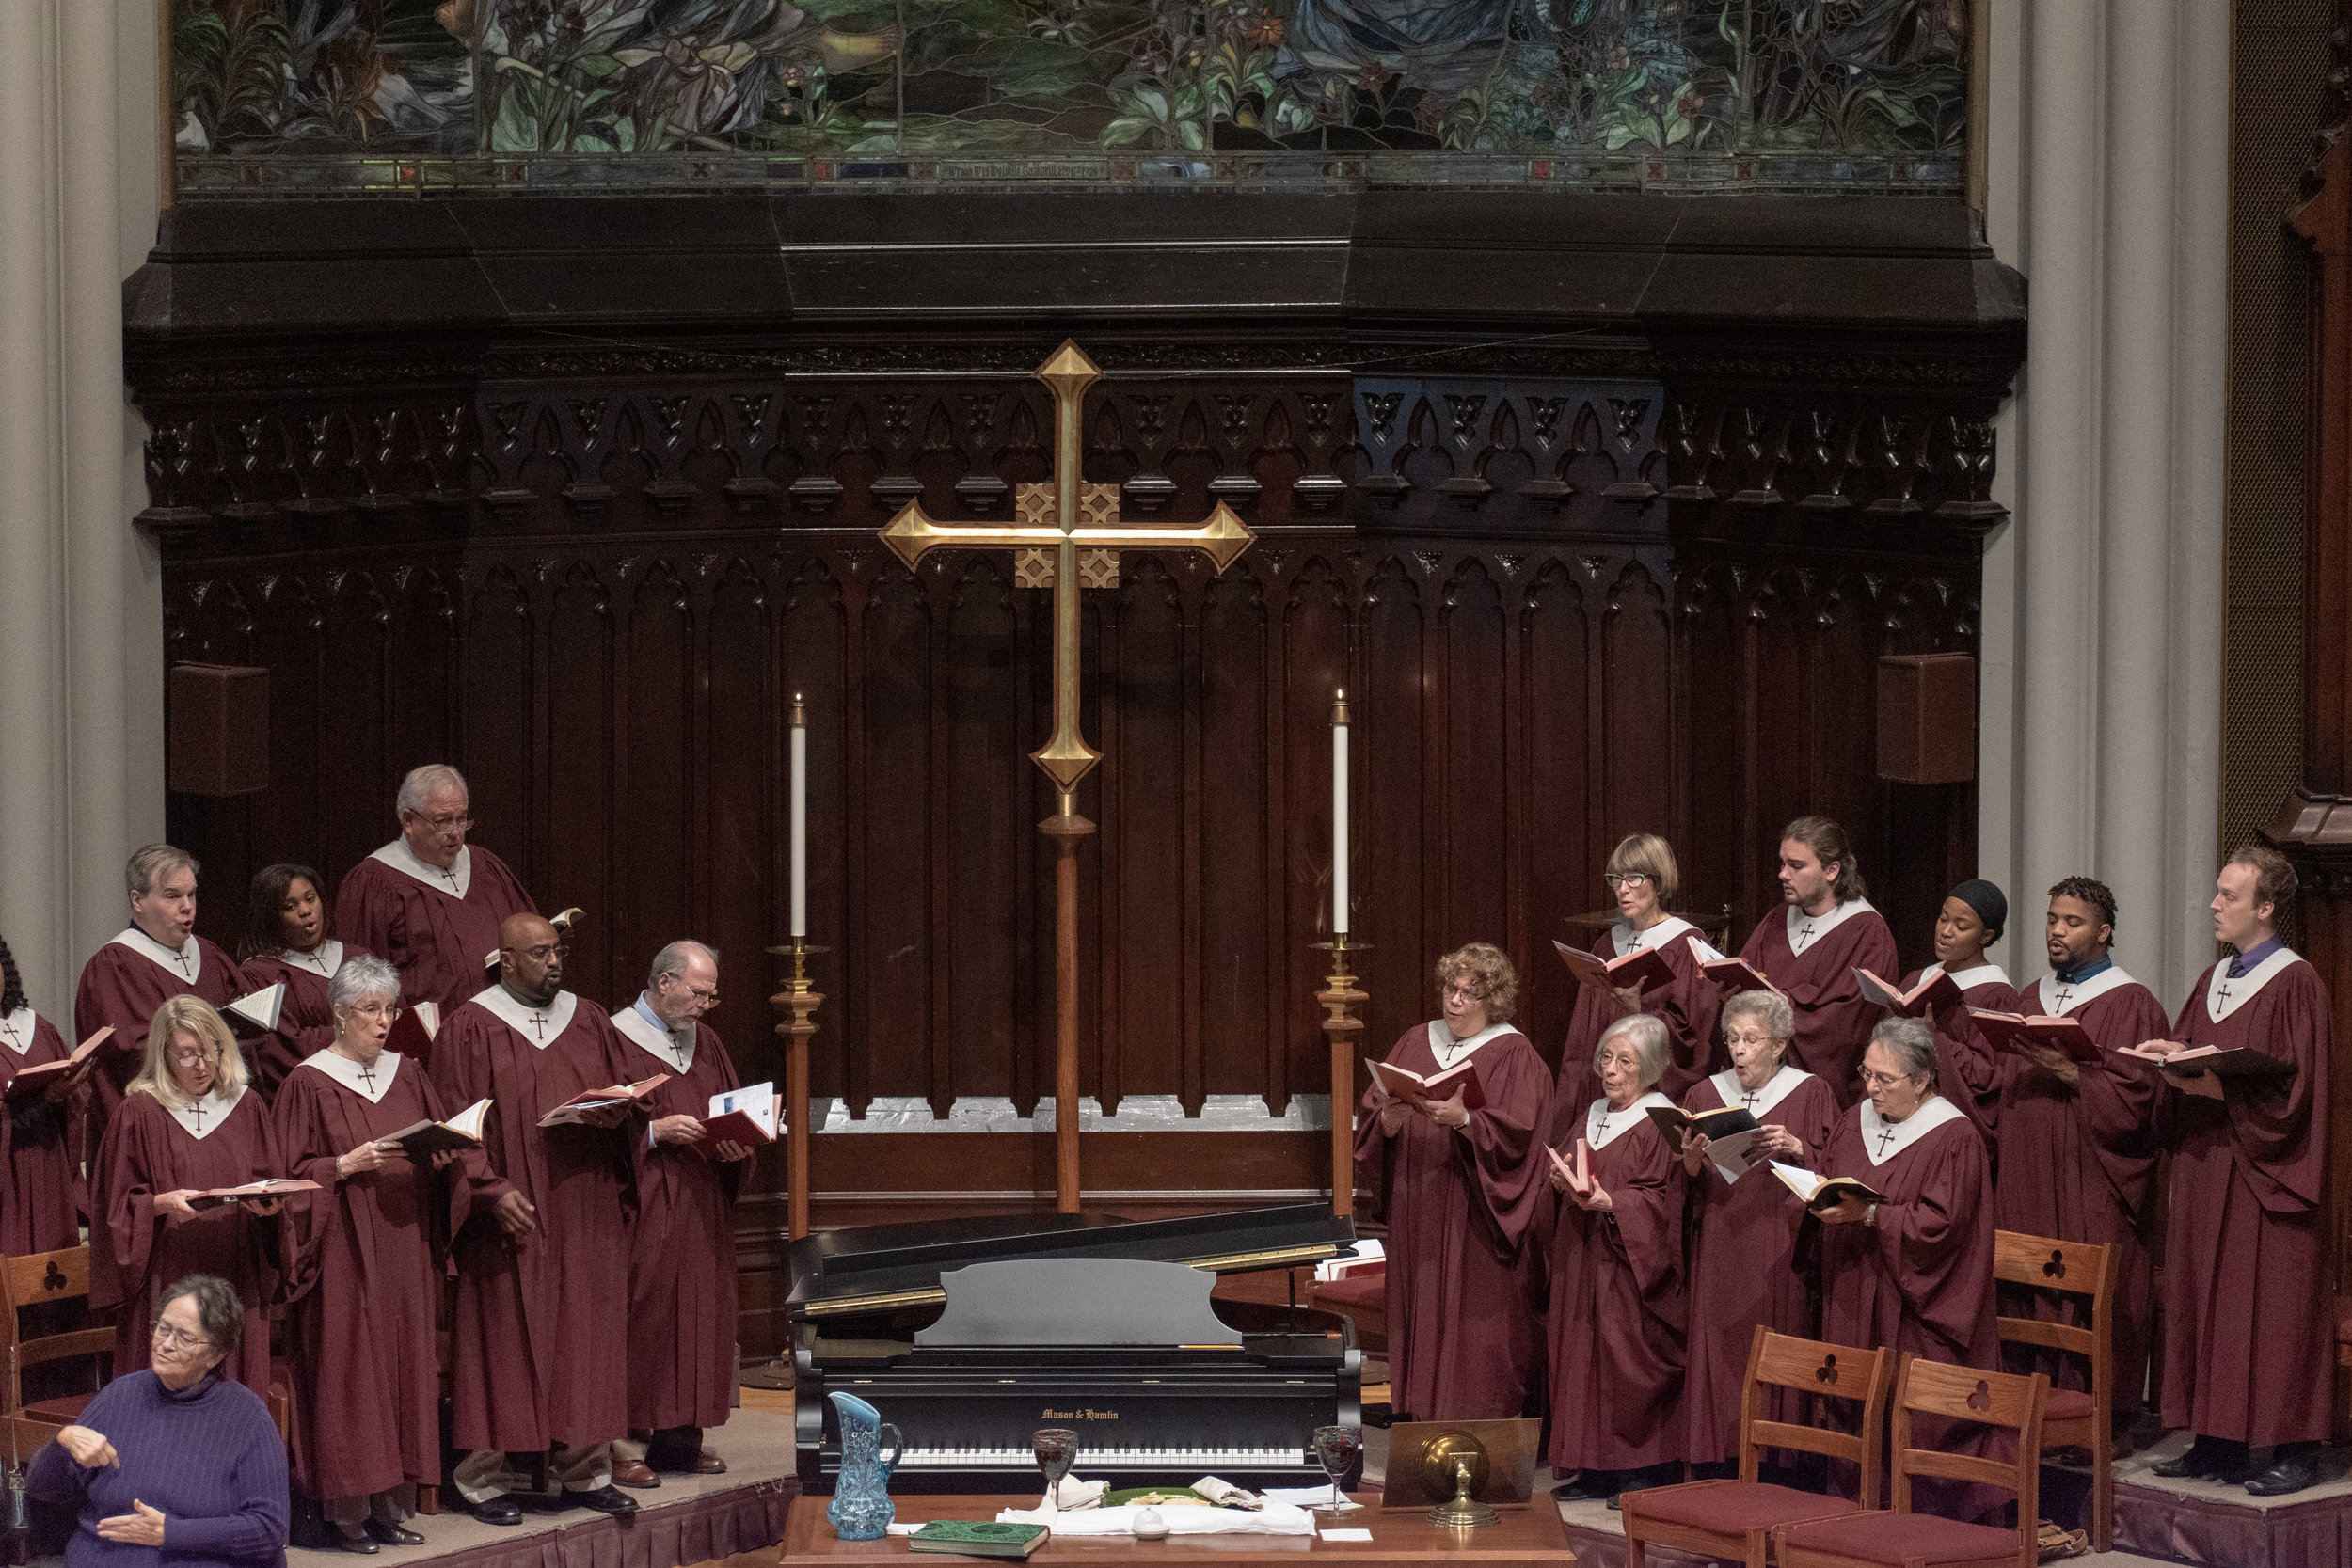 MUSIC MINISTRY - Choir, Handbells, instrumental soloists, wonderful organ playing—we love music at Grace! Learn more about many opportunities for music at Grace. Contact Michael@gracechurchum.org